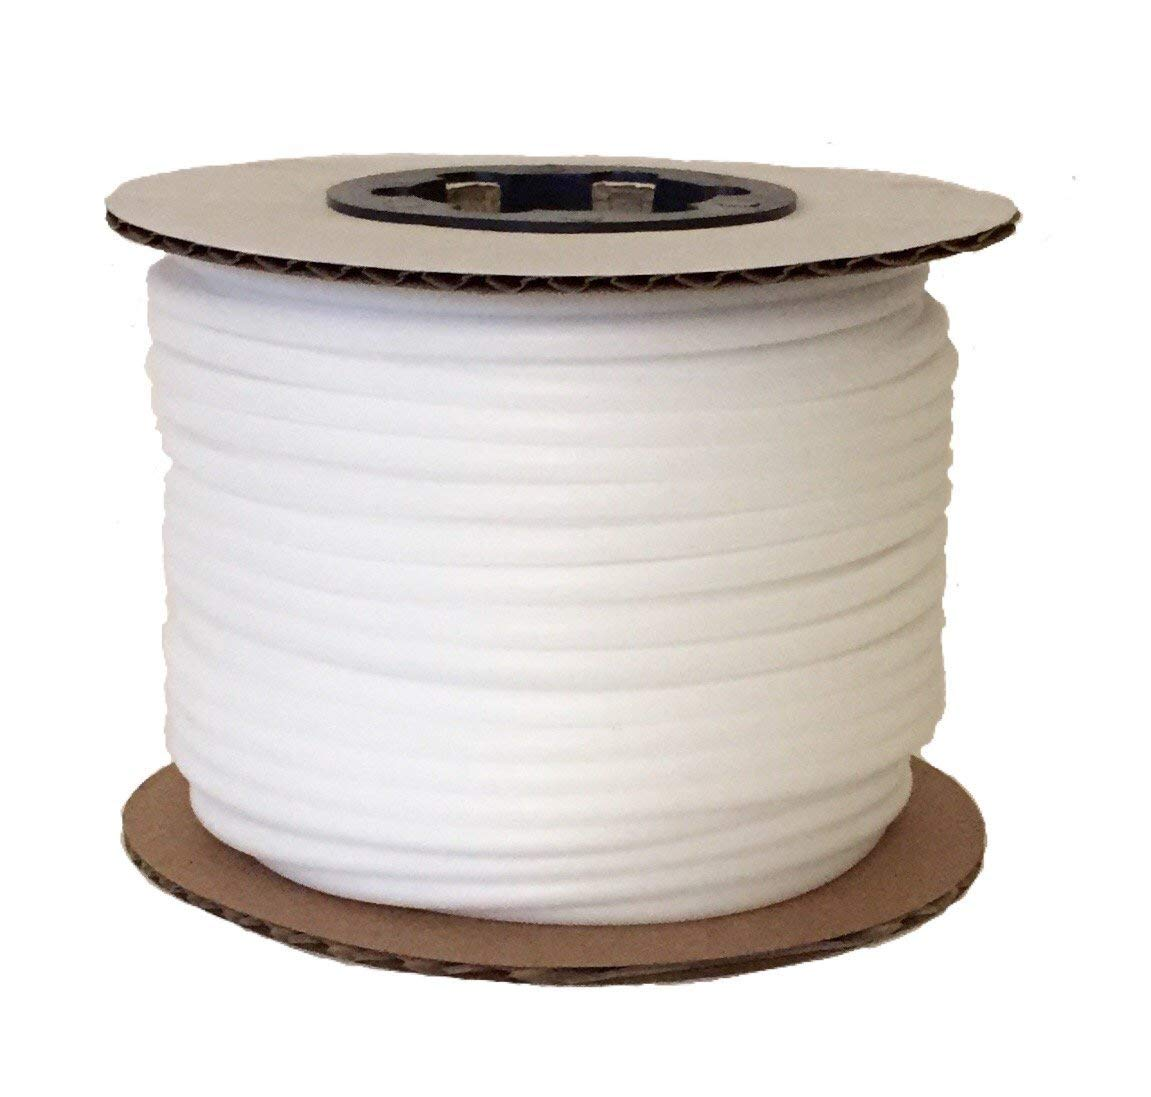 Upholstery Plastic Foam Welt Cord Piping Firm Made in USA 5/32'' (60 Yards) by Great Lakes Cordage